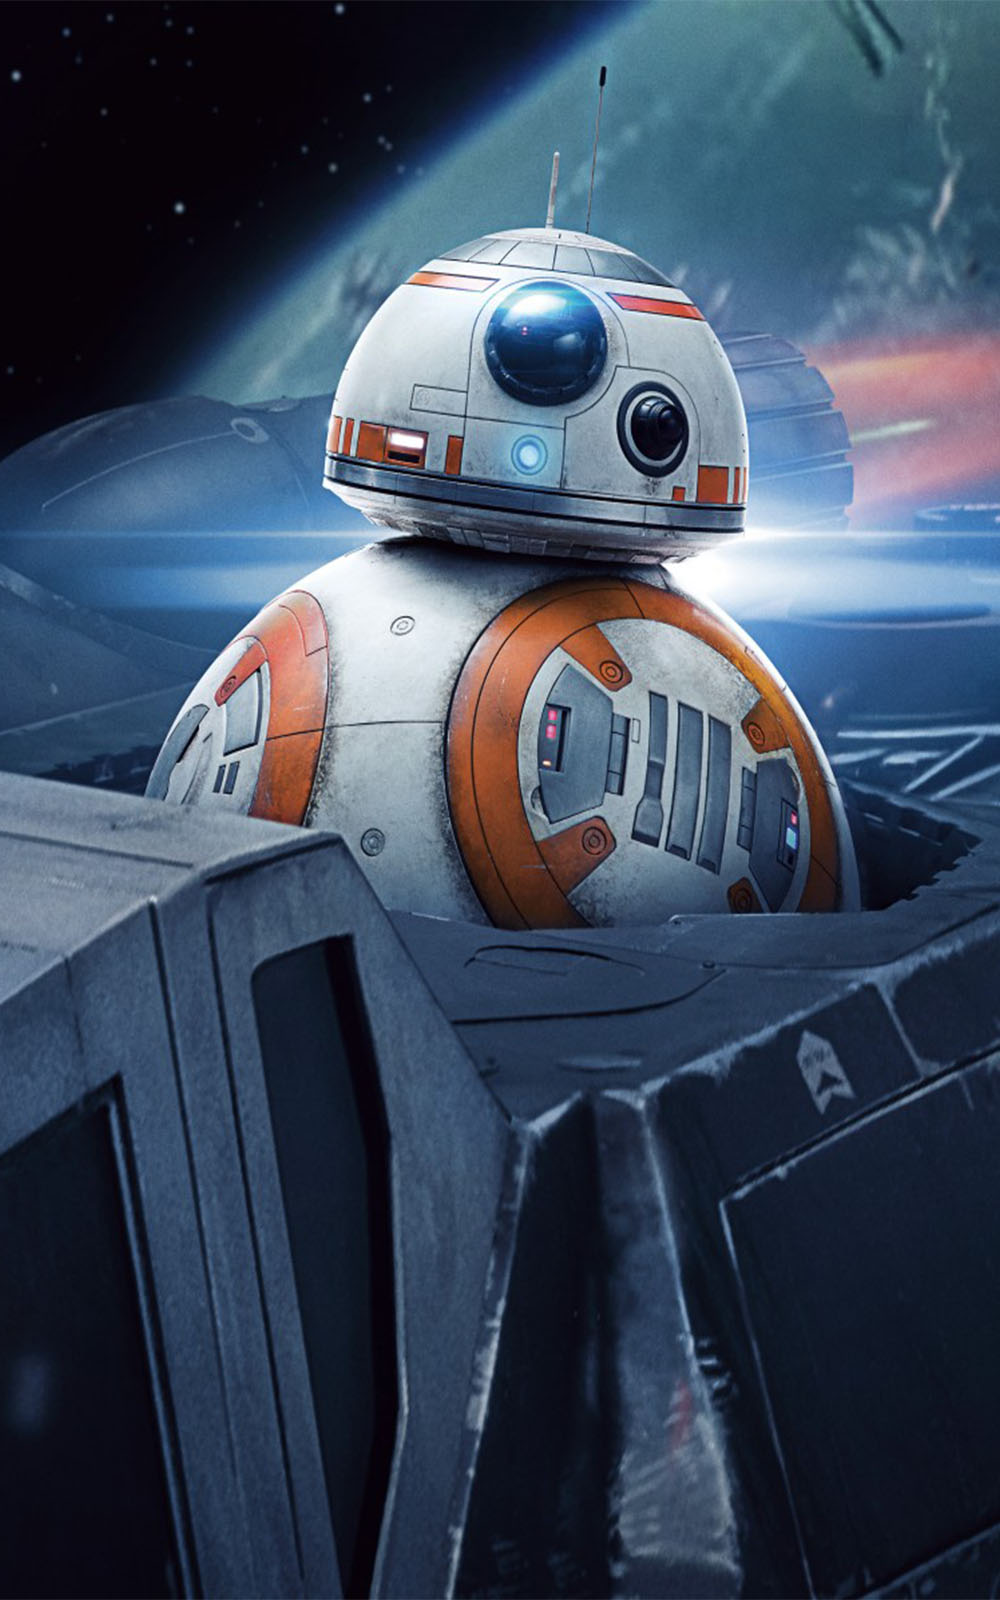 Bb 8 In Star Wars The Last Jedi Hd Mobile Wallpaper Star Wars Wallpaper 4k 1000x1600 Download Hd Wallpaper Wallpapertip